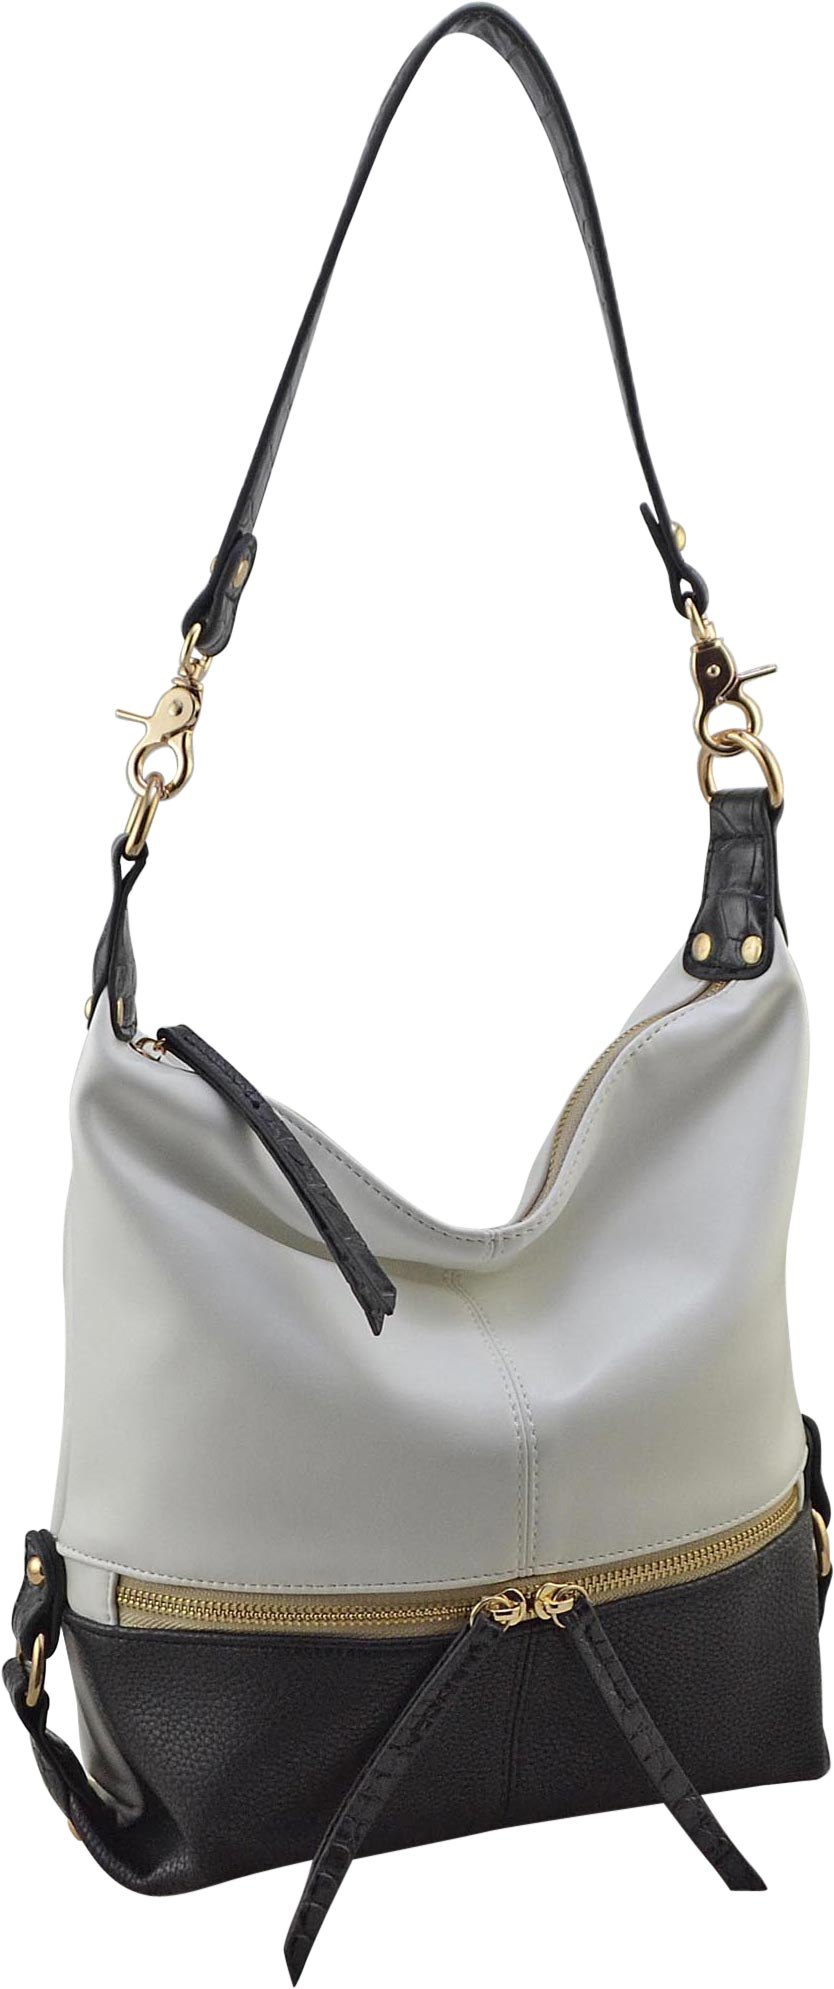 Colorblock Hobo- Large - Susie O's Handbags